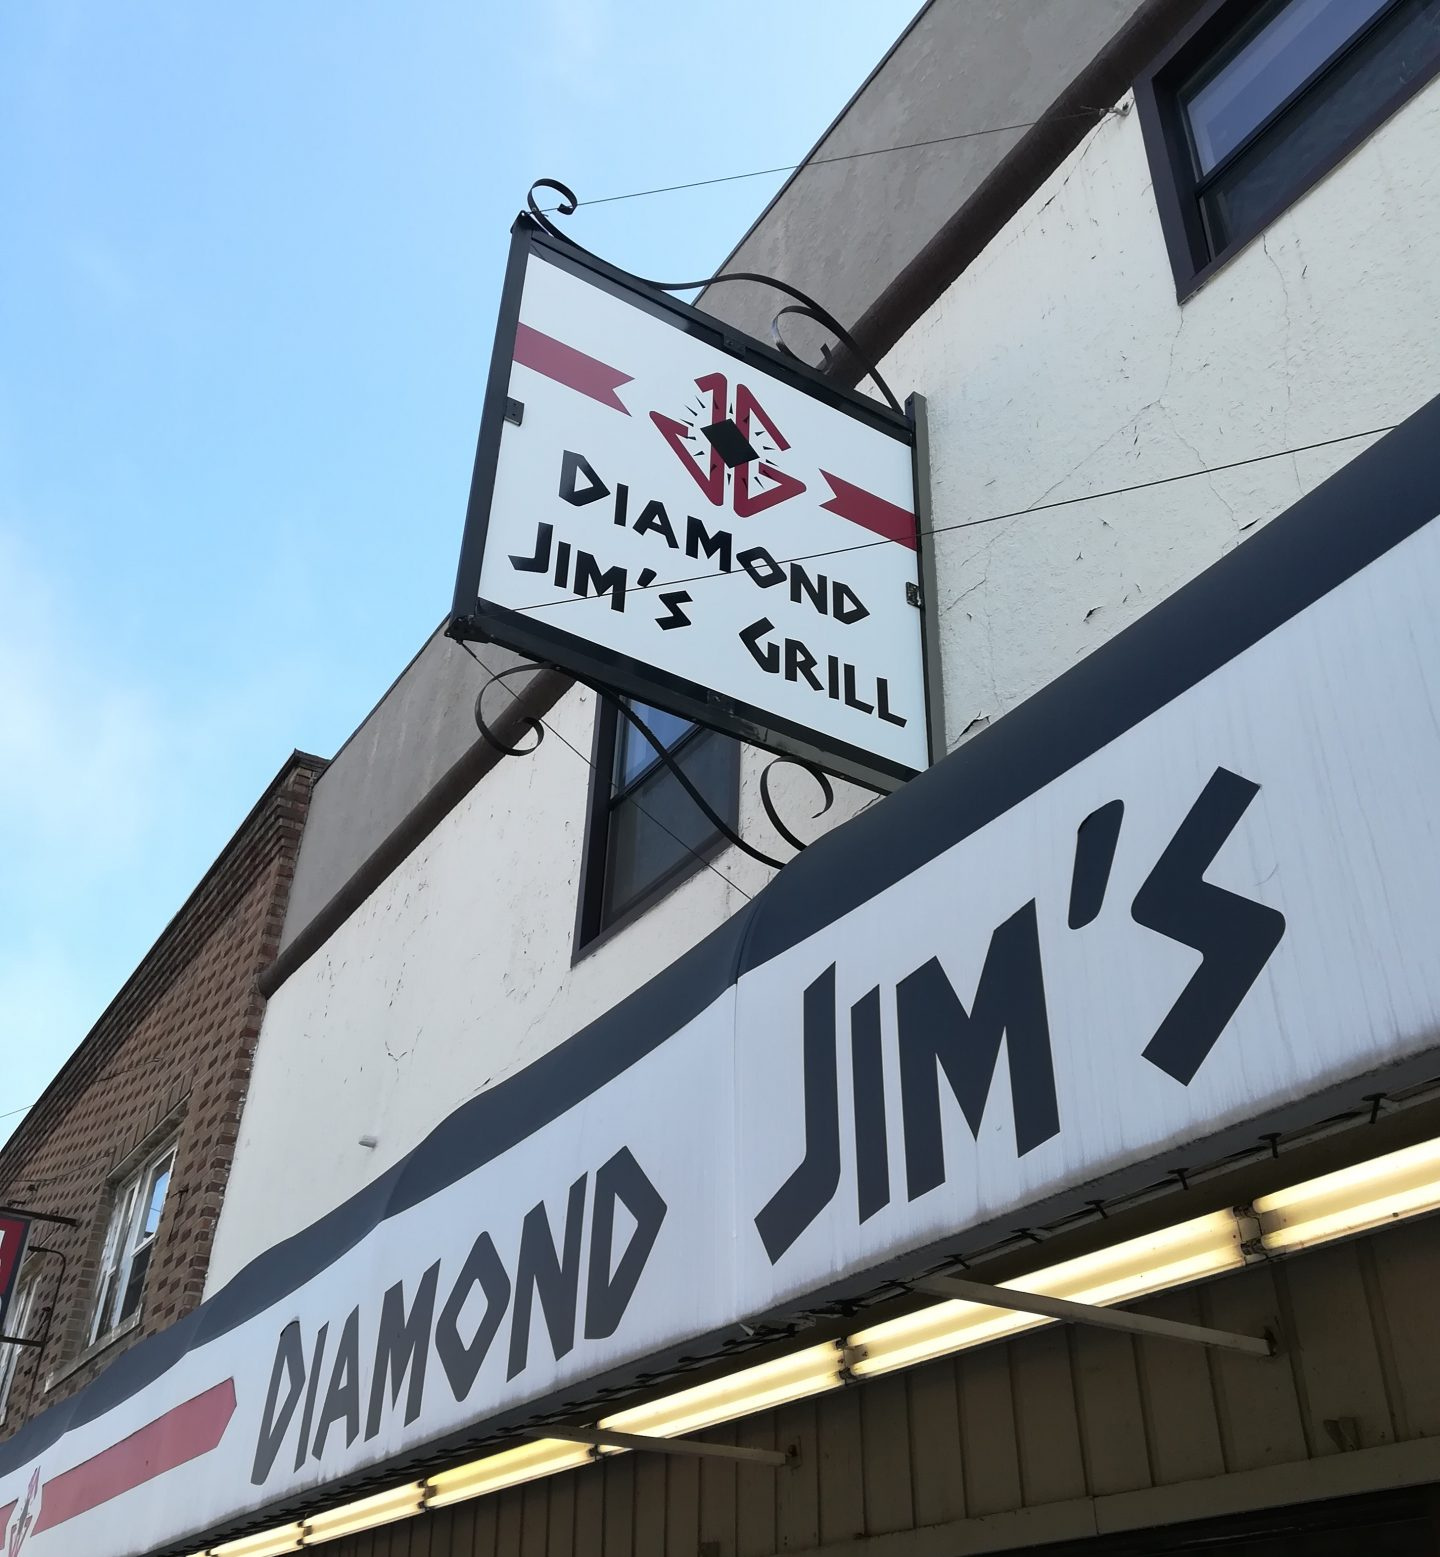 Dimond Jim's, Bellingham review